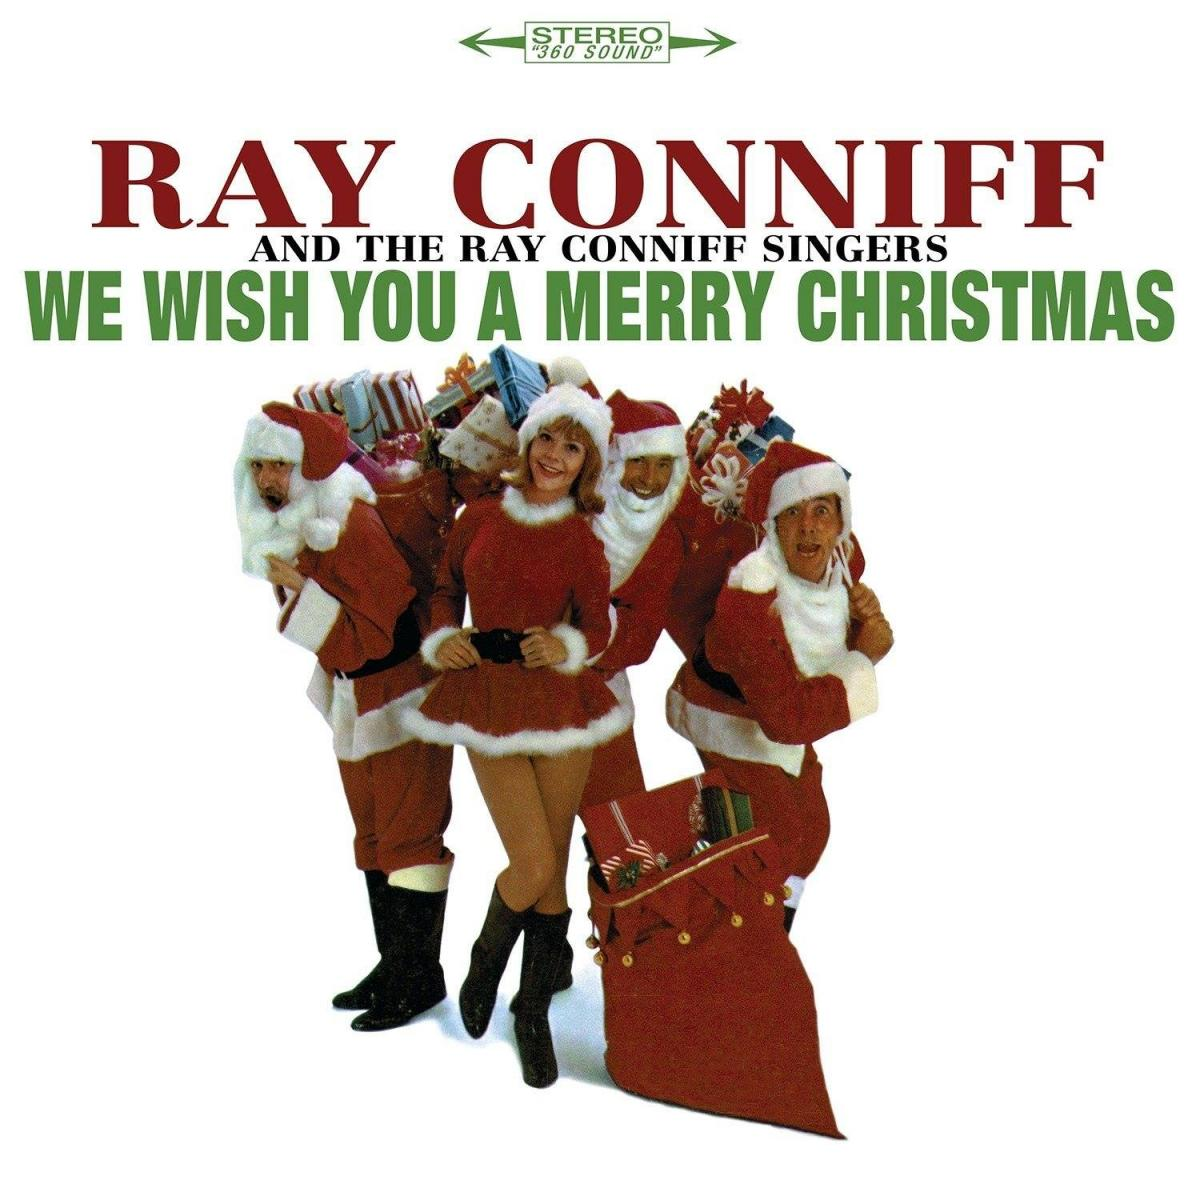 Ray Conniff's We Wish You A Merry Christmas 180g white vinyl reissue